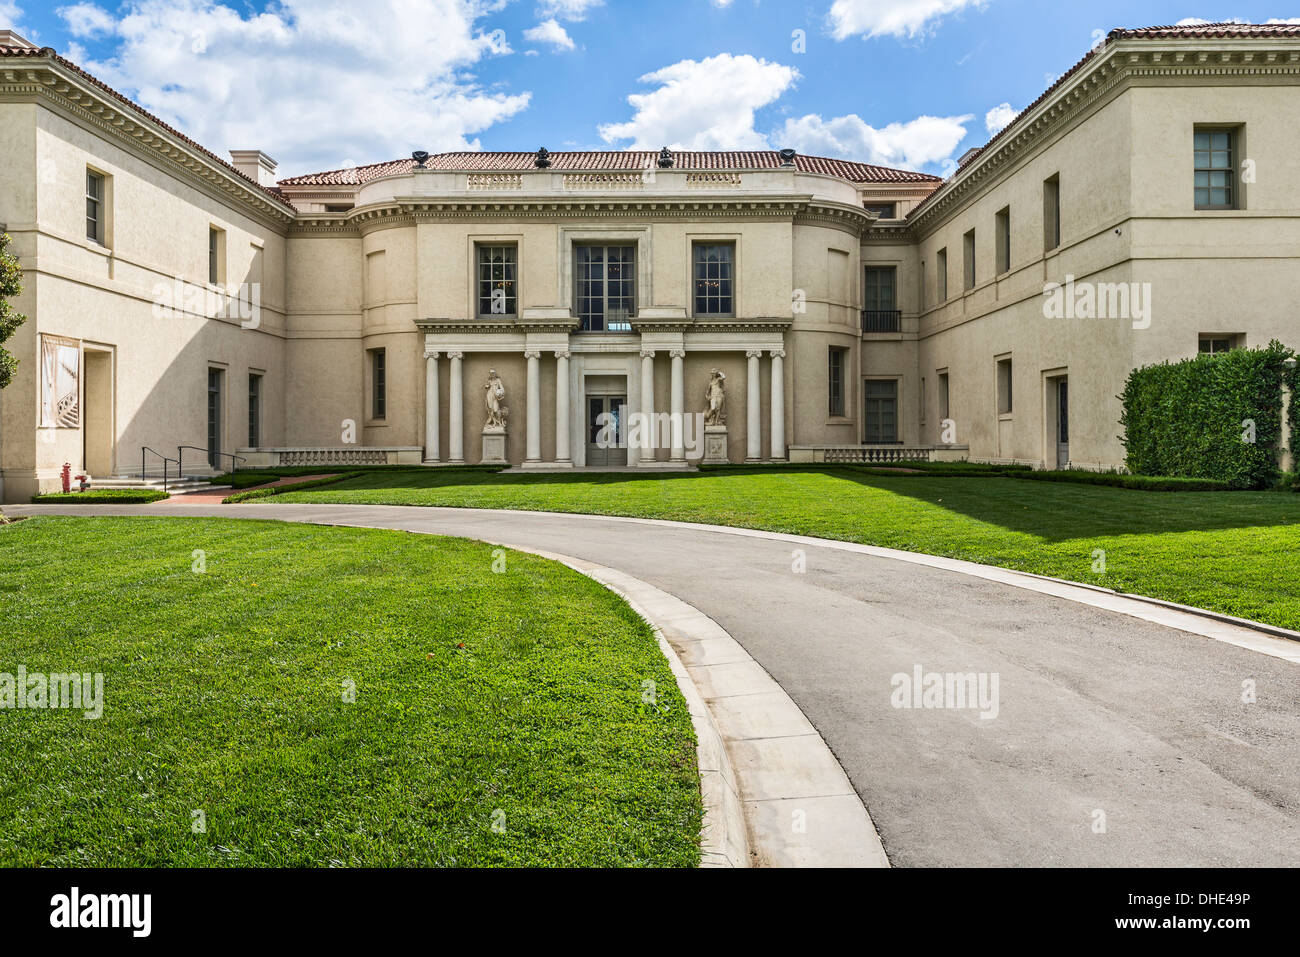 The magnificent Huntington Art Gallery. - Stock Image